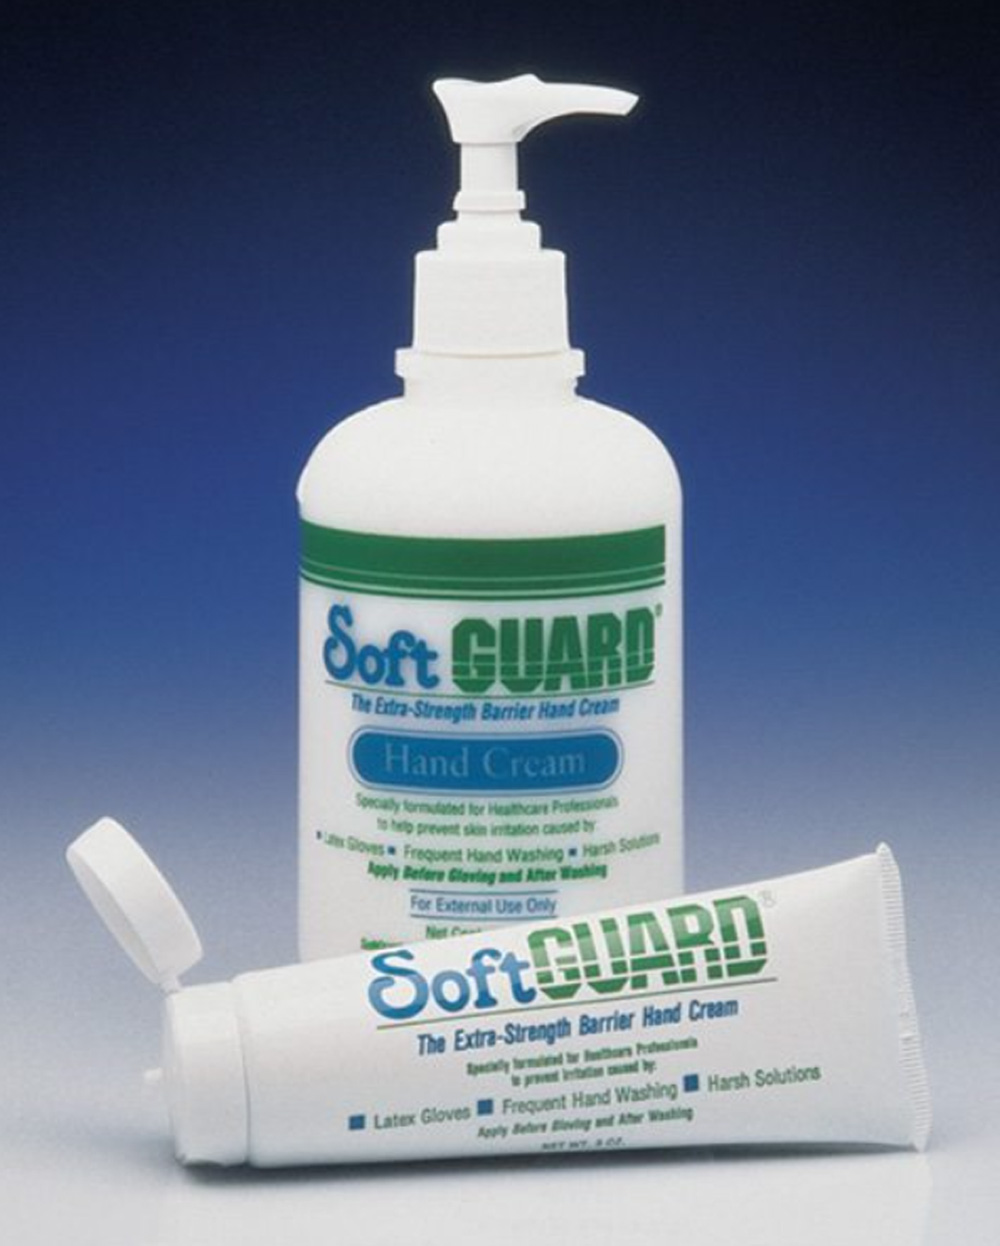 SoftGuard Hand Cream